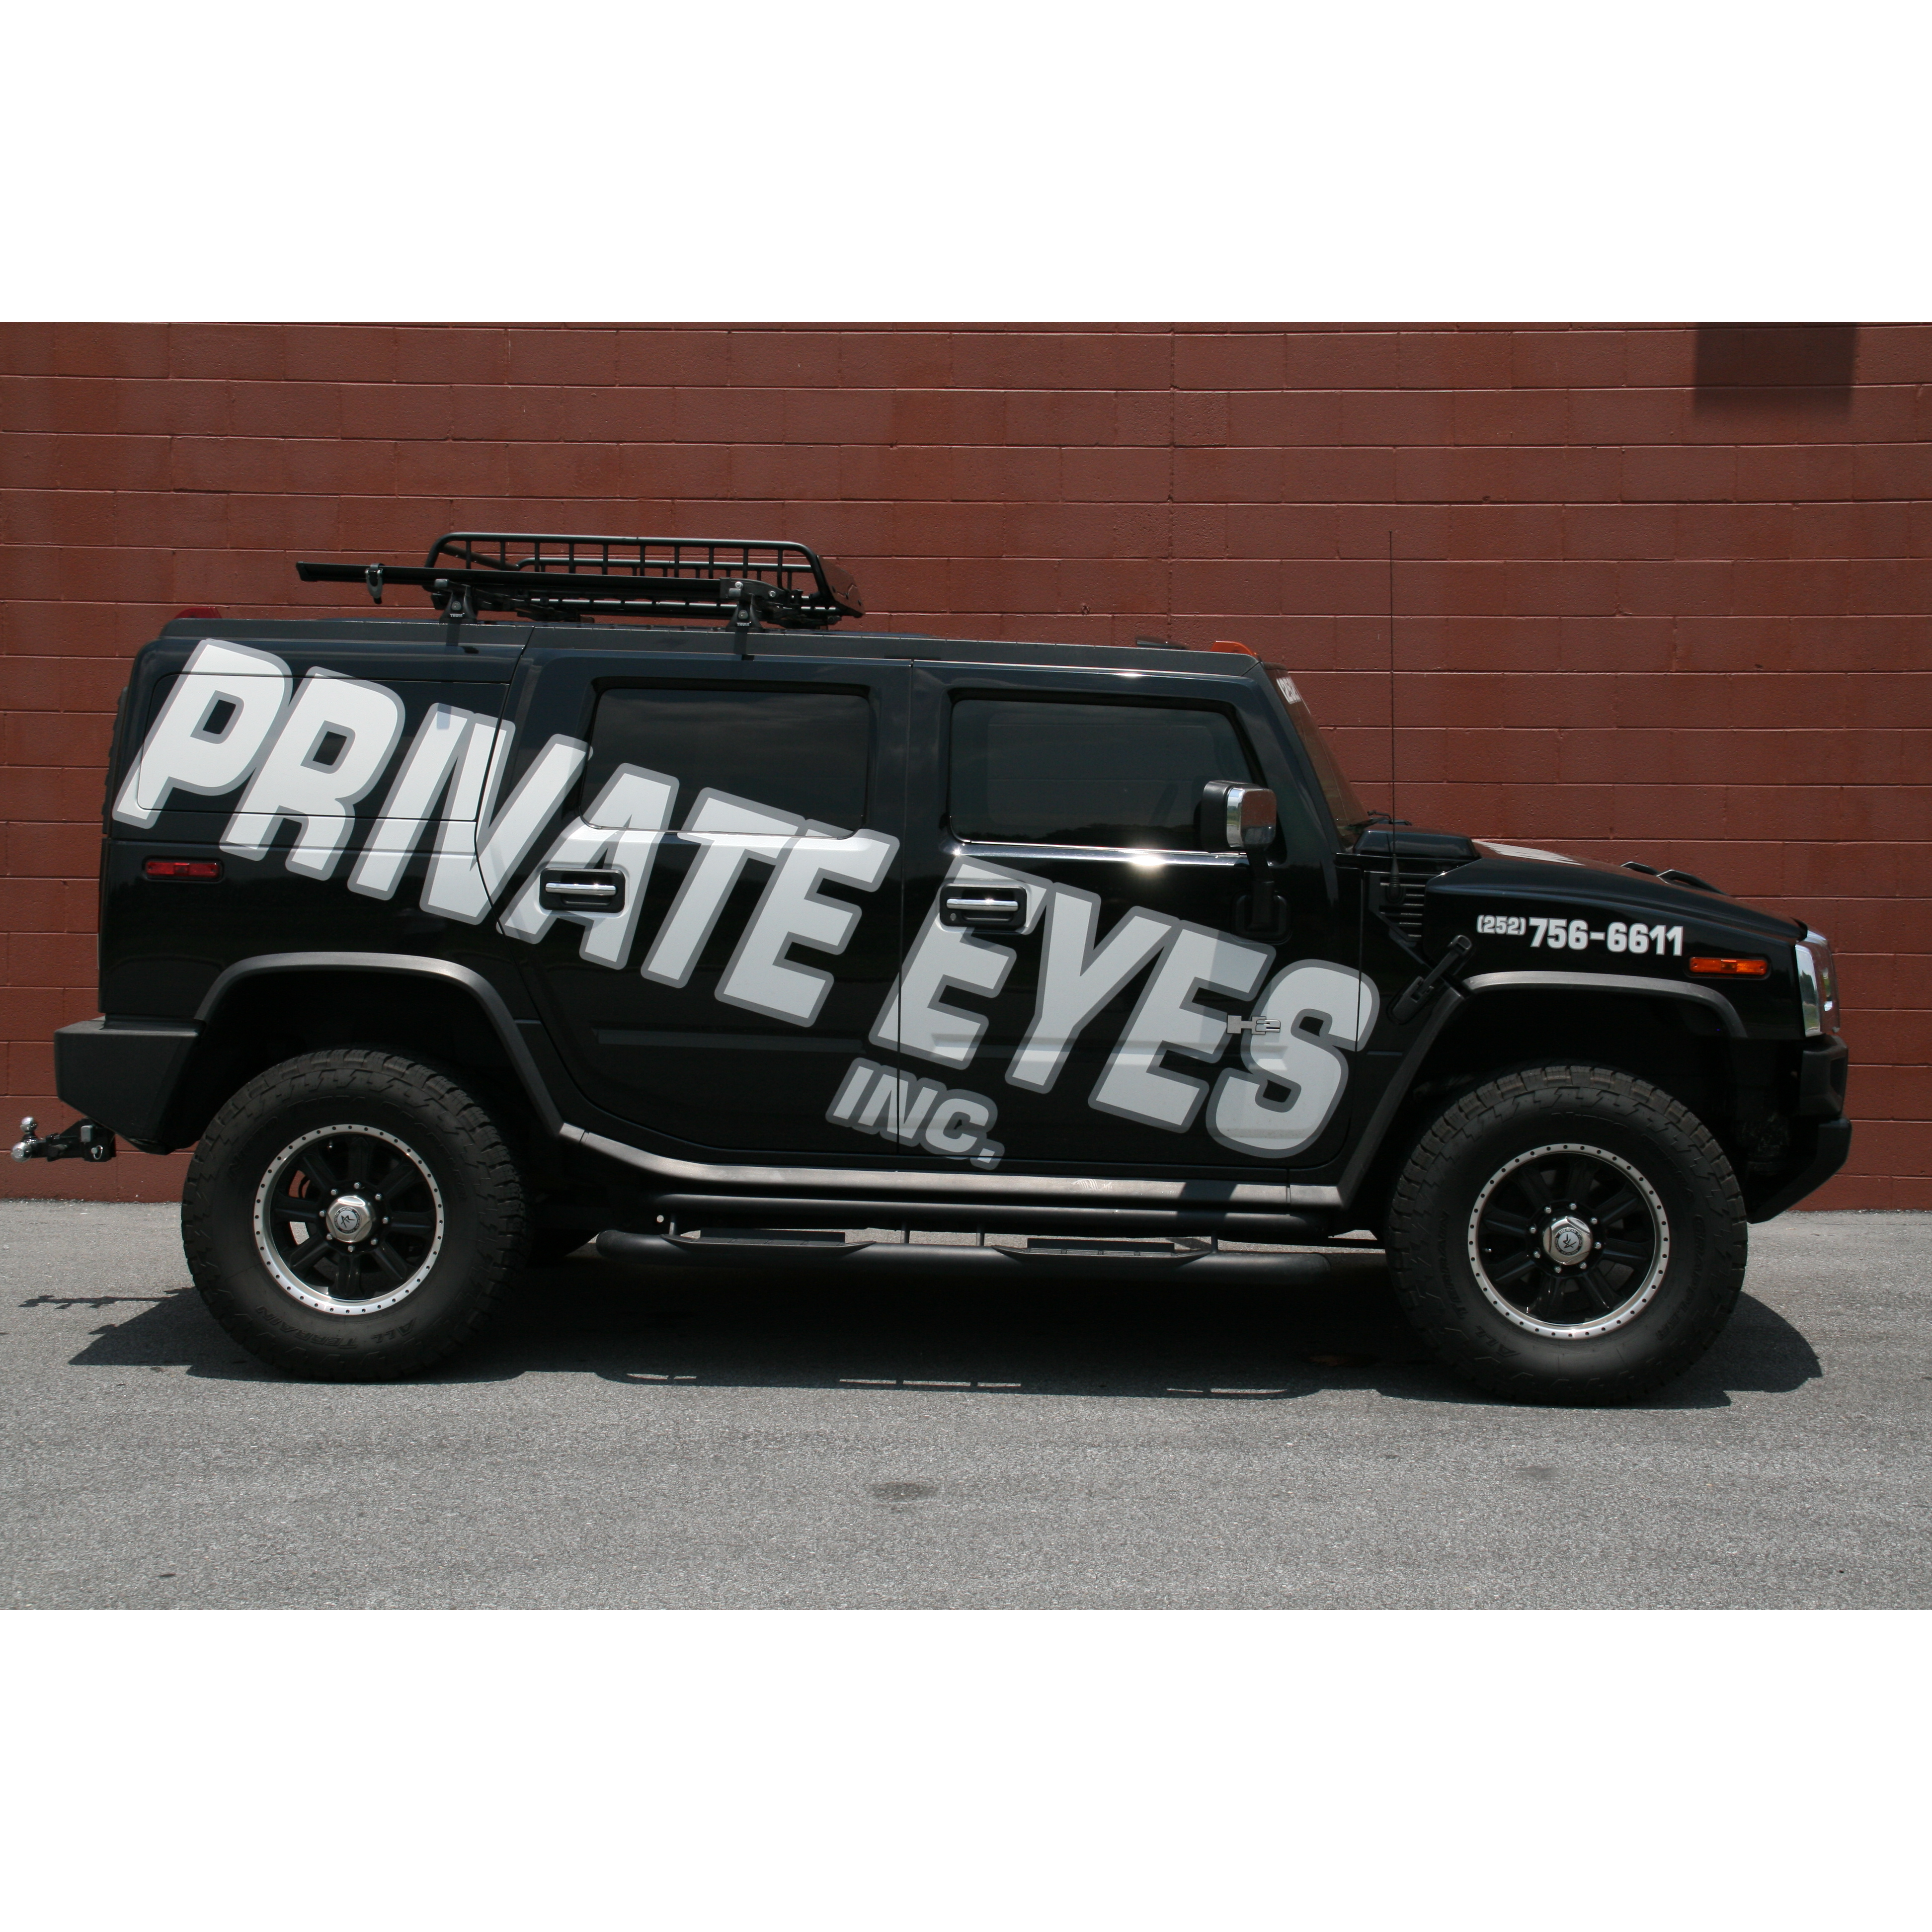 private eyes greenville nc